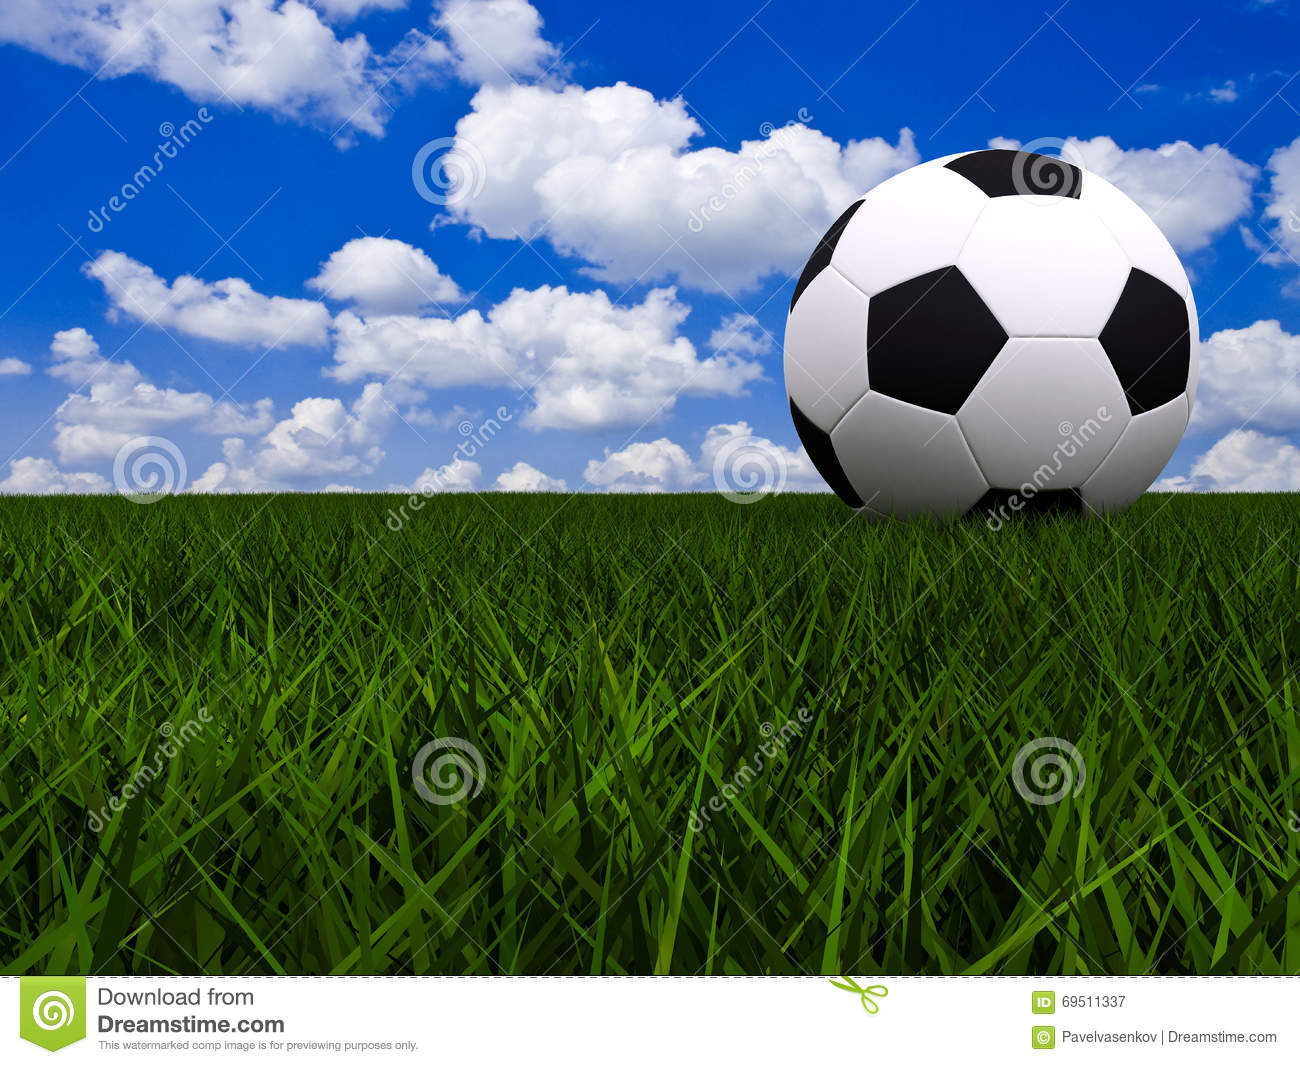 Soccer Football On Green Field With Blue Sky Background: Soccer Ball On Green Grass Stock Illustration